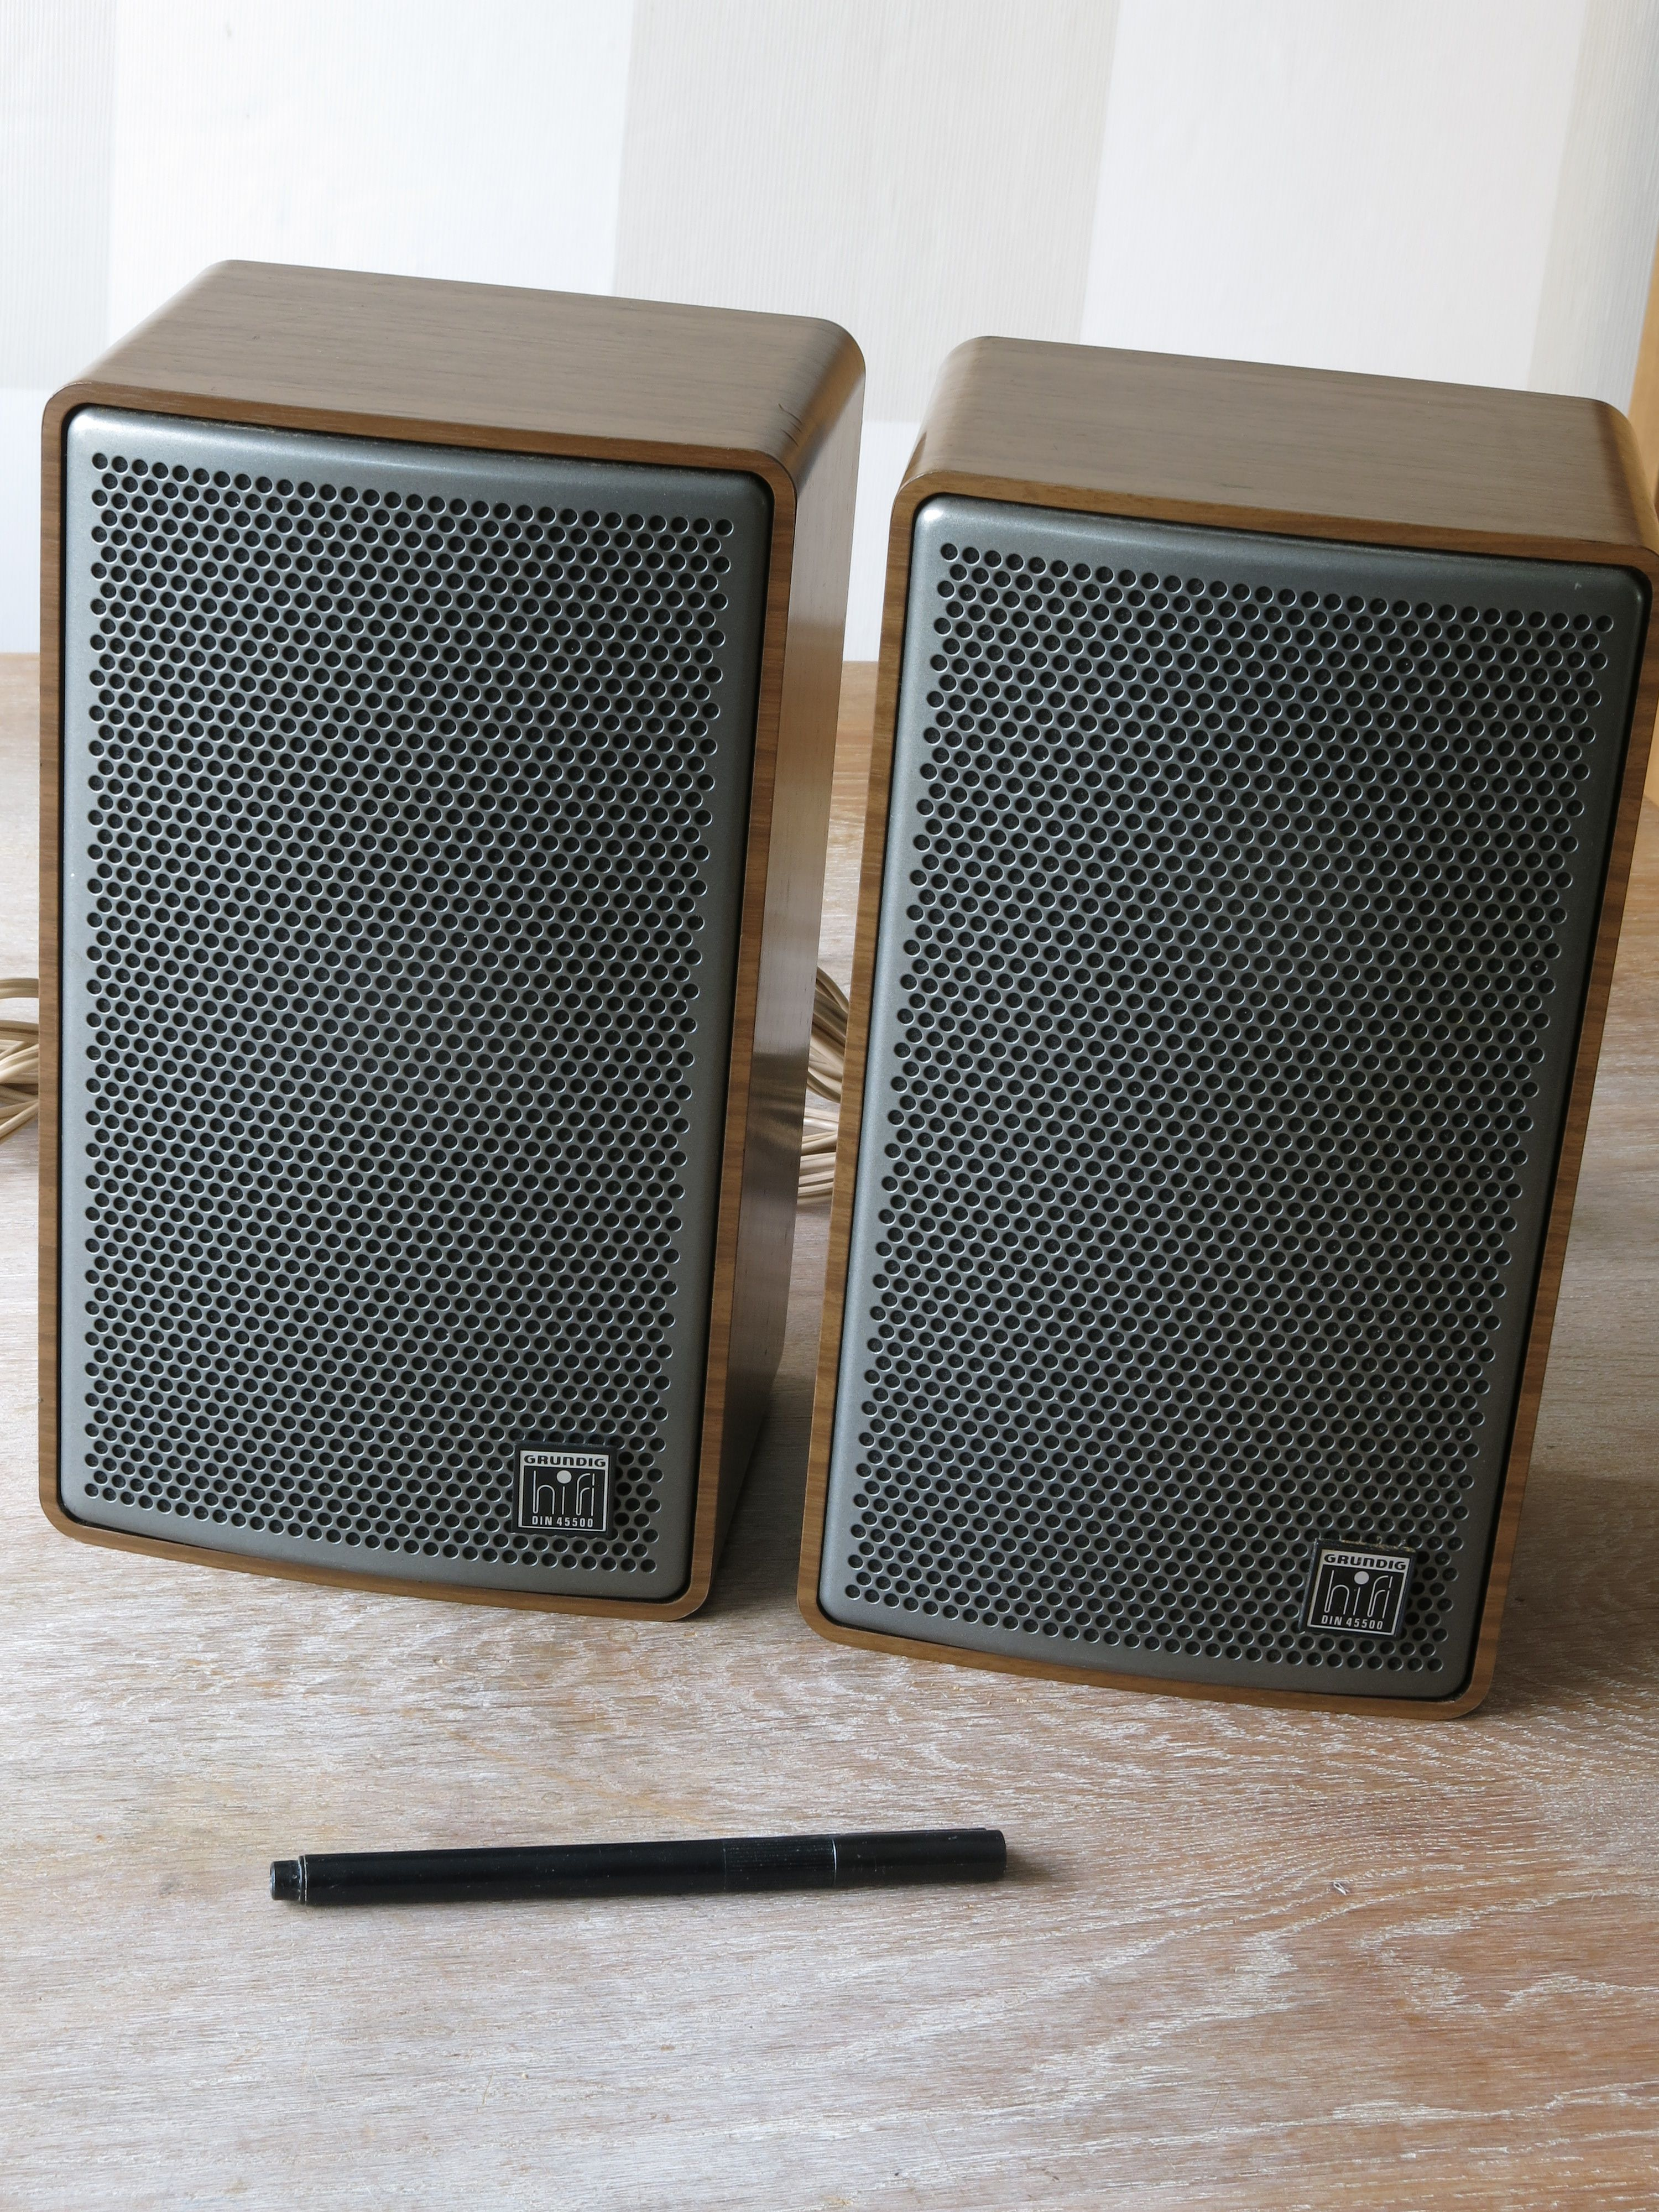 Vintage GRUNDIG Super-HiFi Mini Box 330 Loudspeakers | vntgc